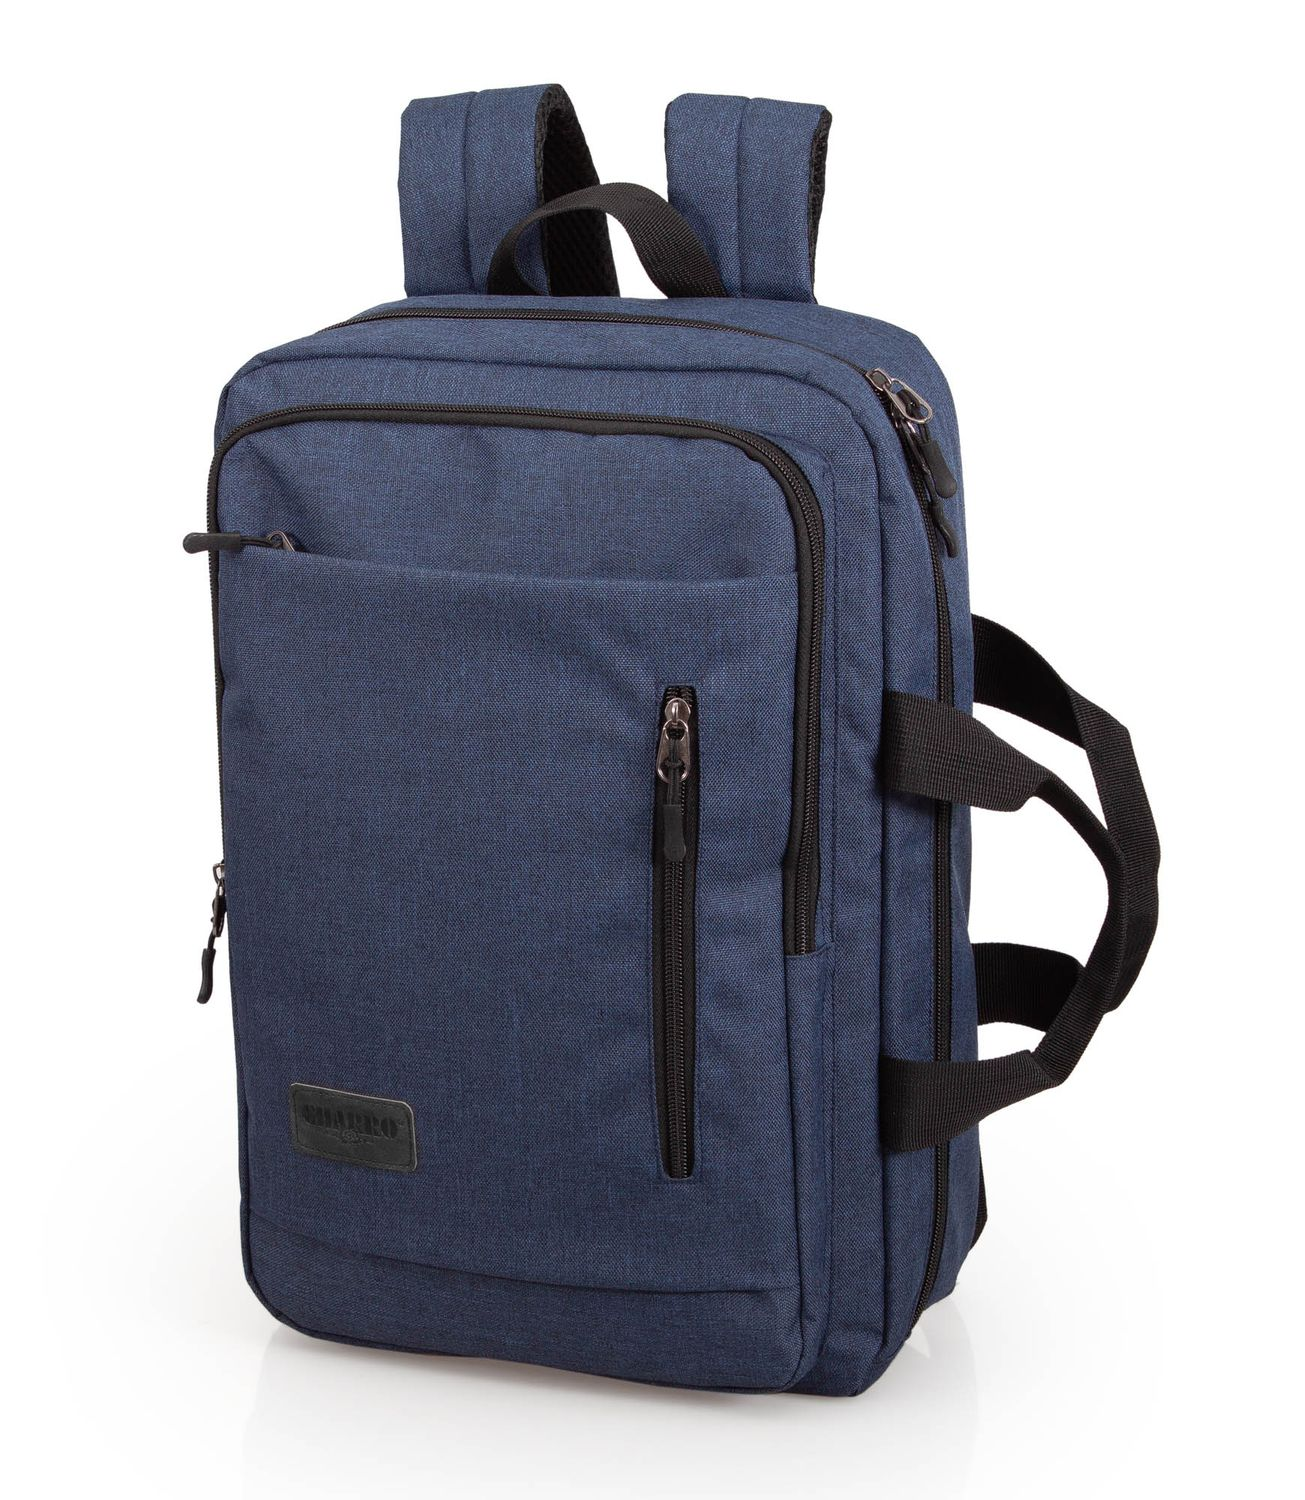 Backpack Rucksack EL CHARRO 2 in 1 Blue – image 1